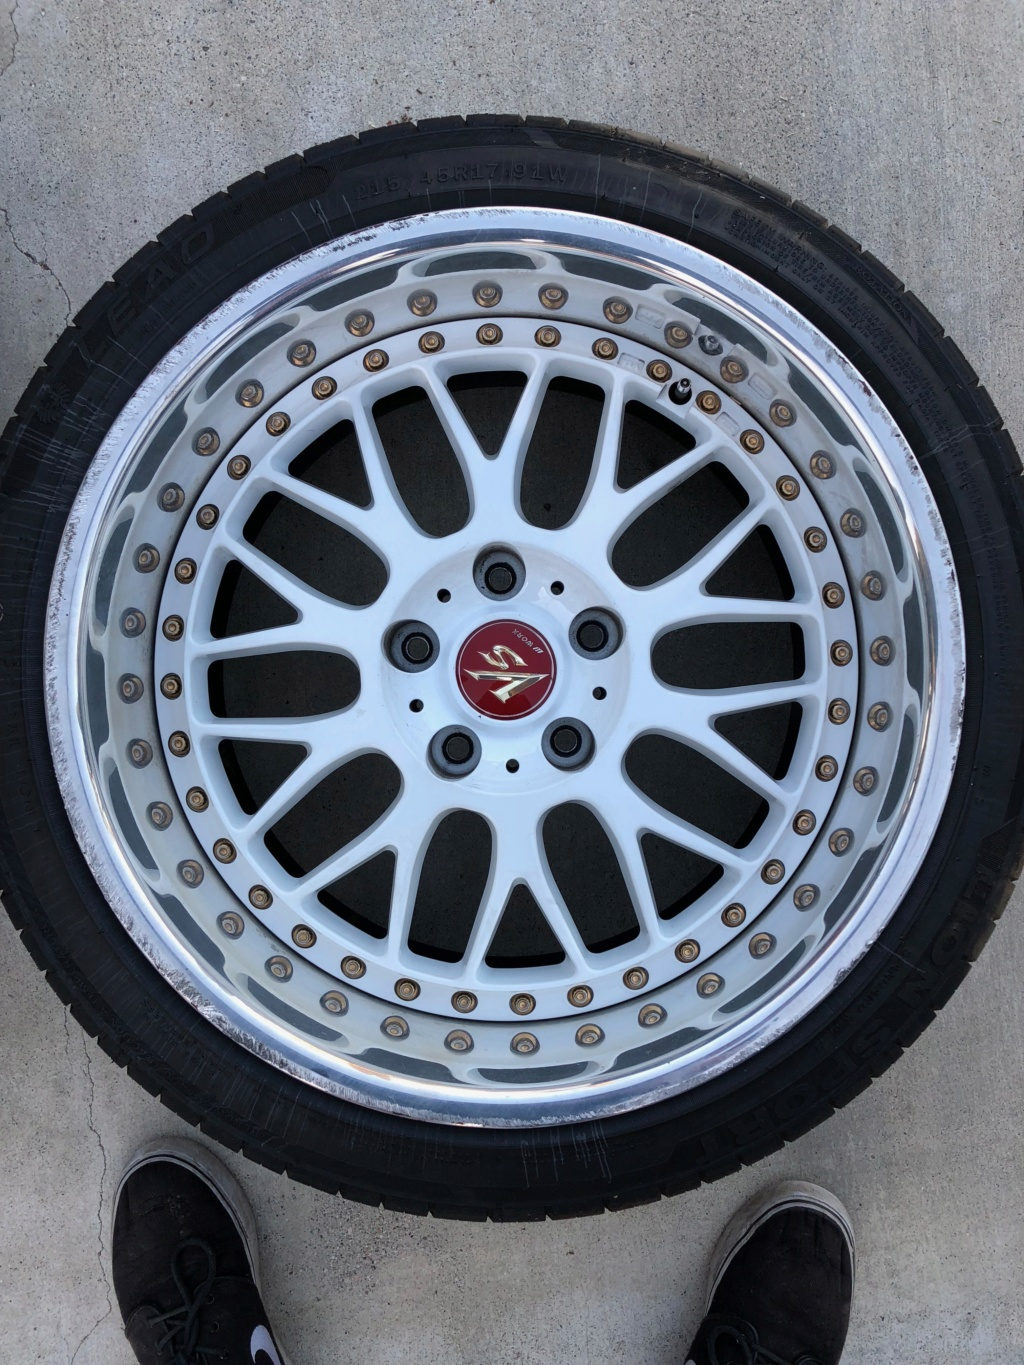 Wheels For Sale: 17x9.5 +10 Work VSXX - $2000 OBO - Los Angeles, CA Img_0212